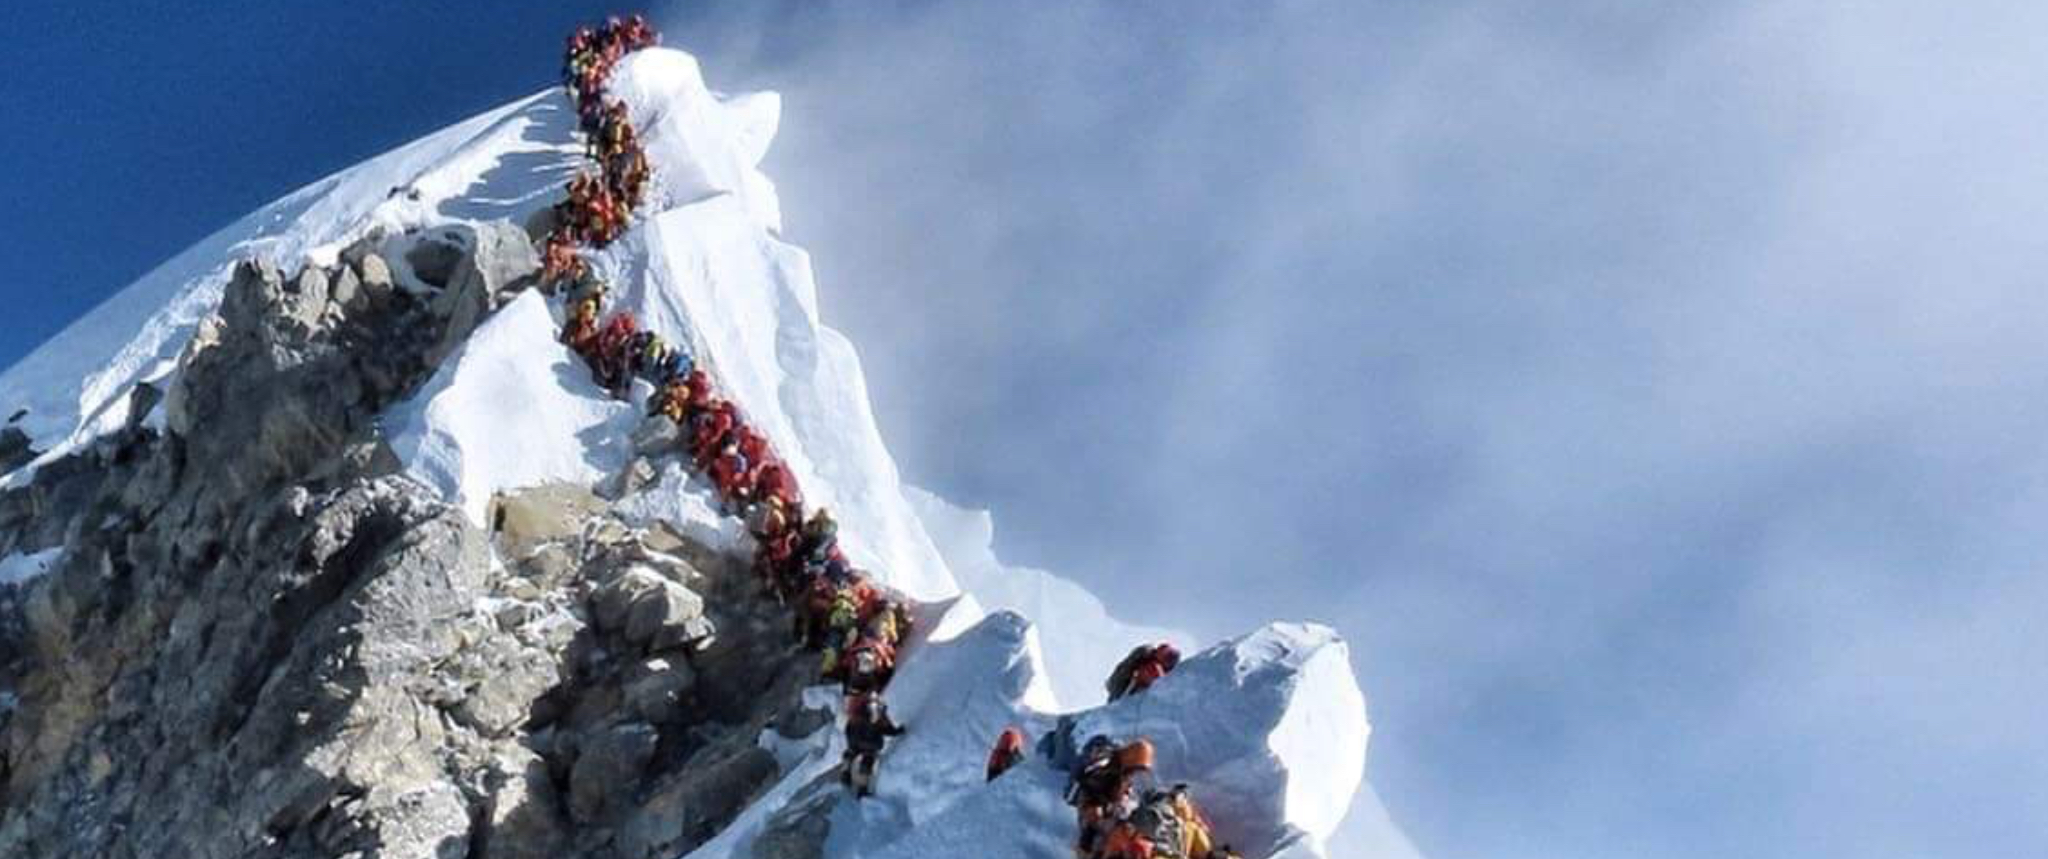 Everest climbing claims more lives